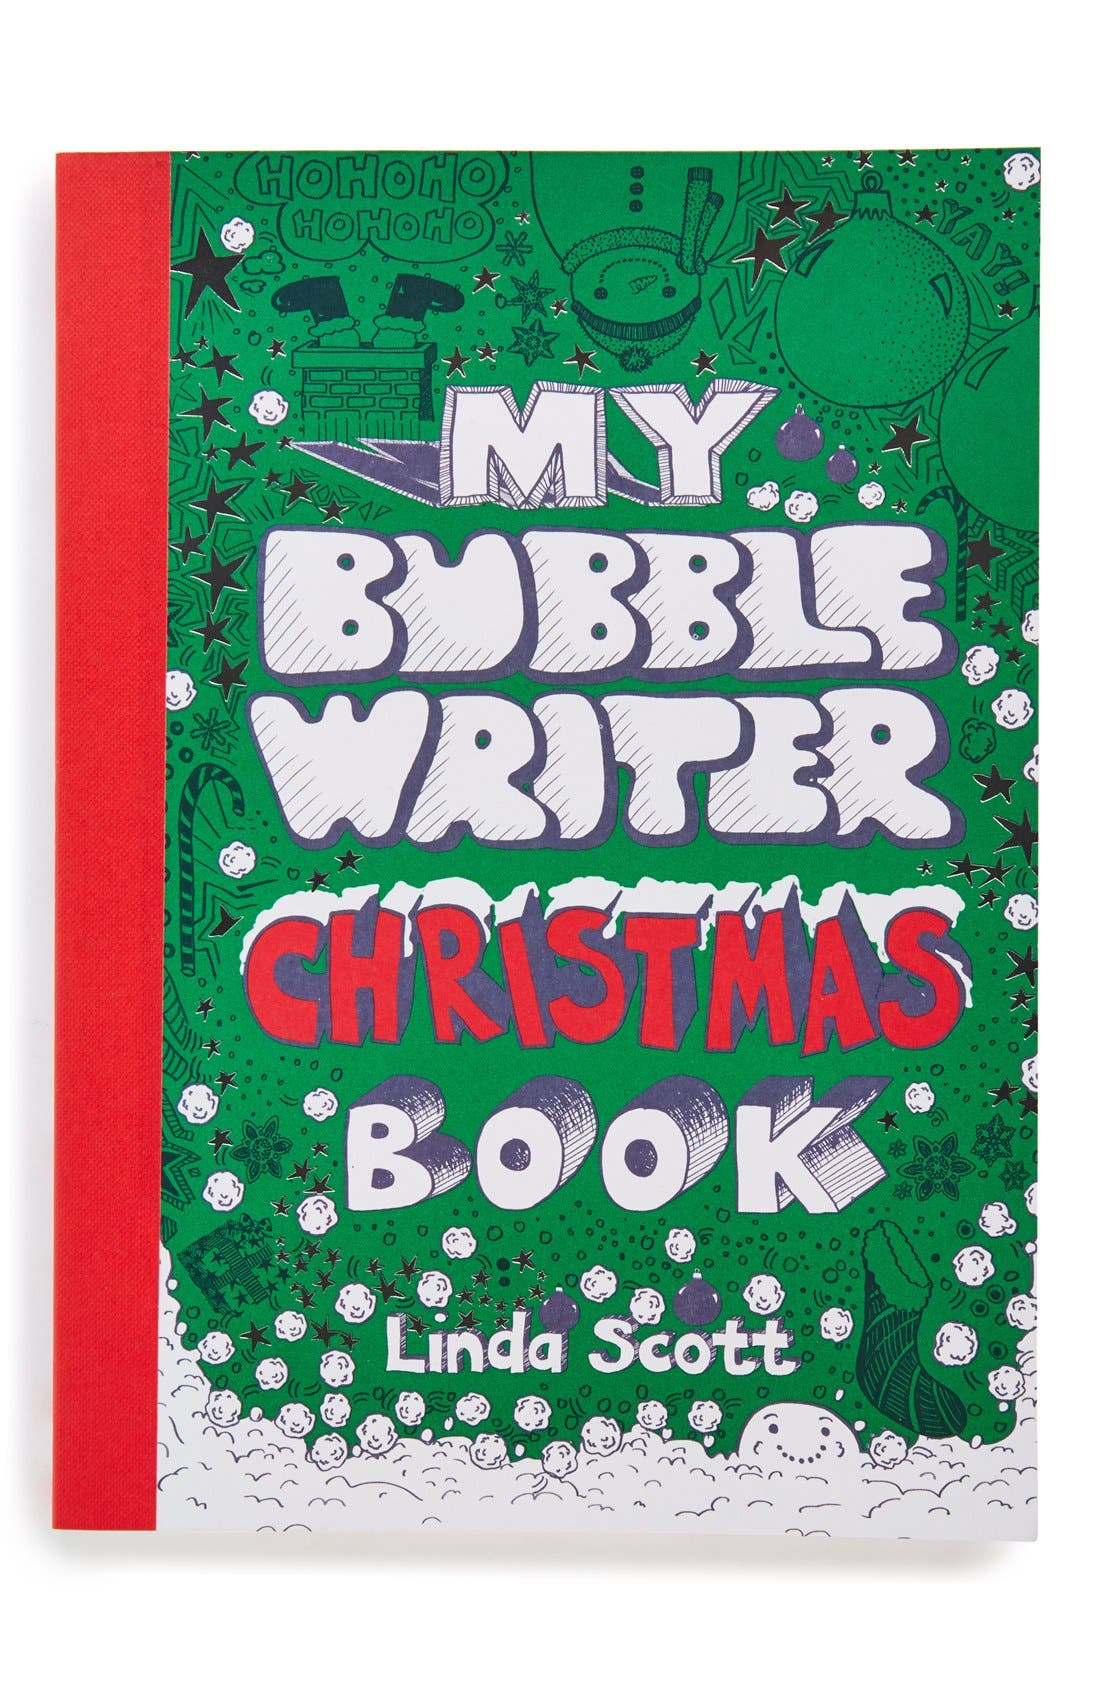 Main Image - 'My Bubble Writer Christmas Book'